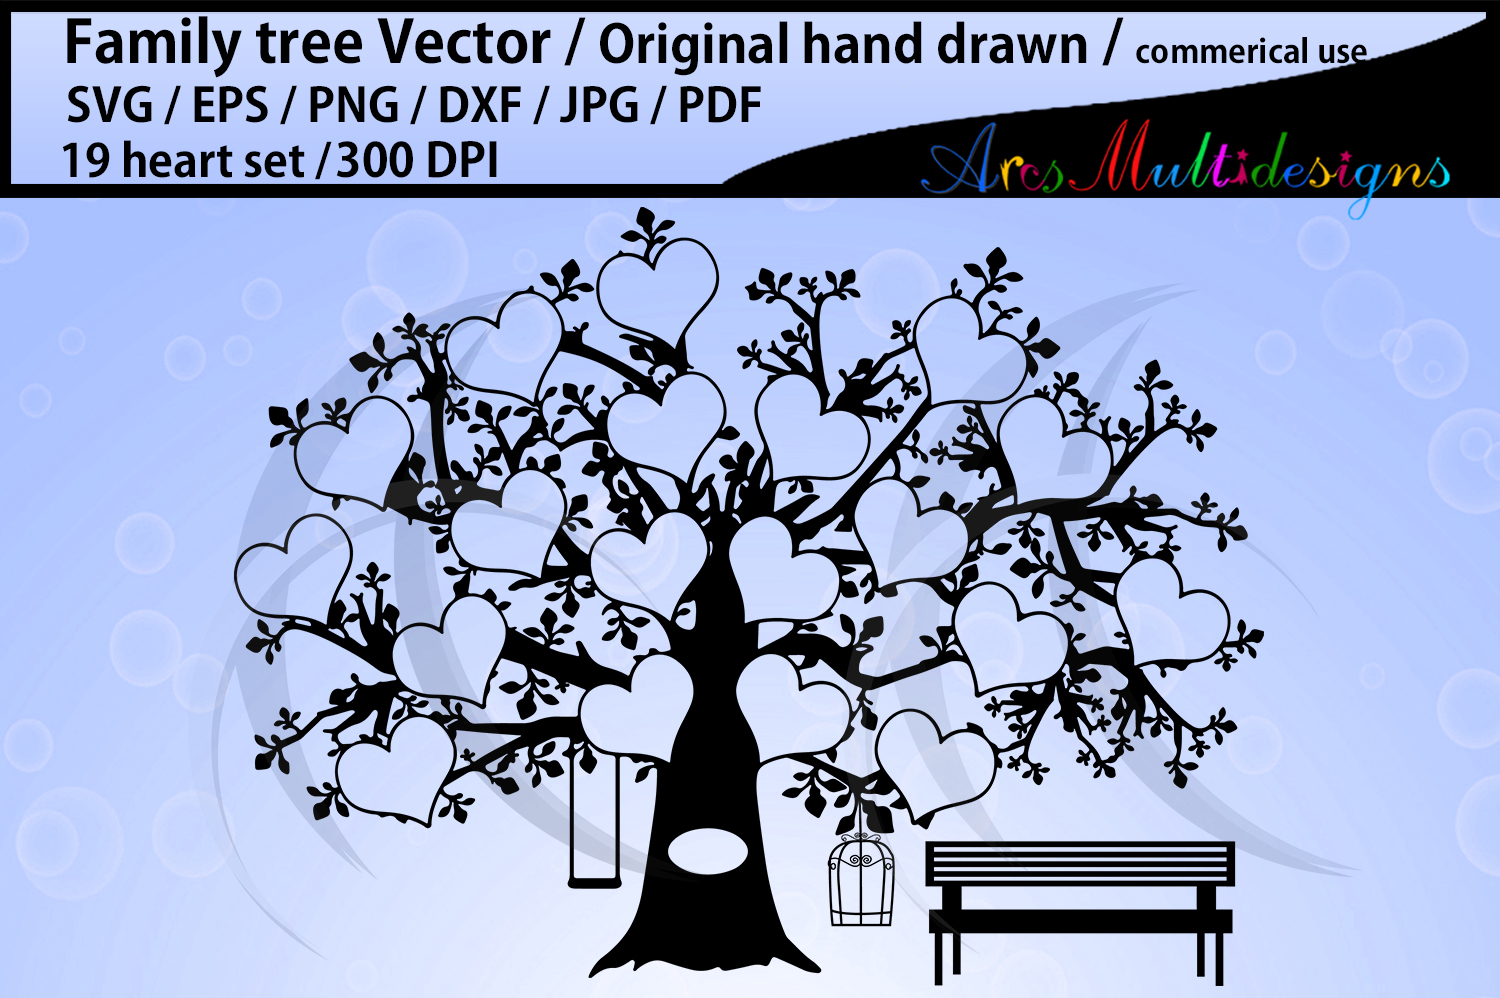 Download Free 19 Spots Family Tree With Hearts Graphic By Arcs Multidesigns for Cricut Explore, Silhouette and other cutting machines.